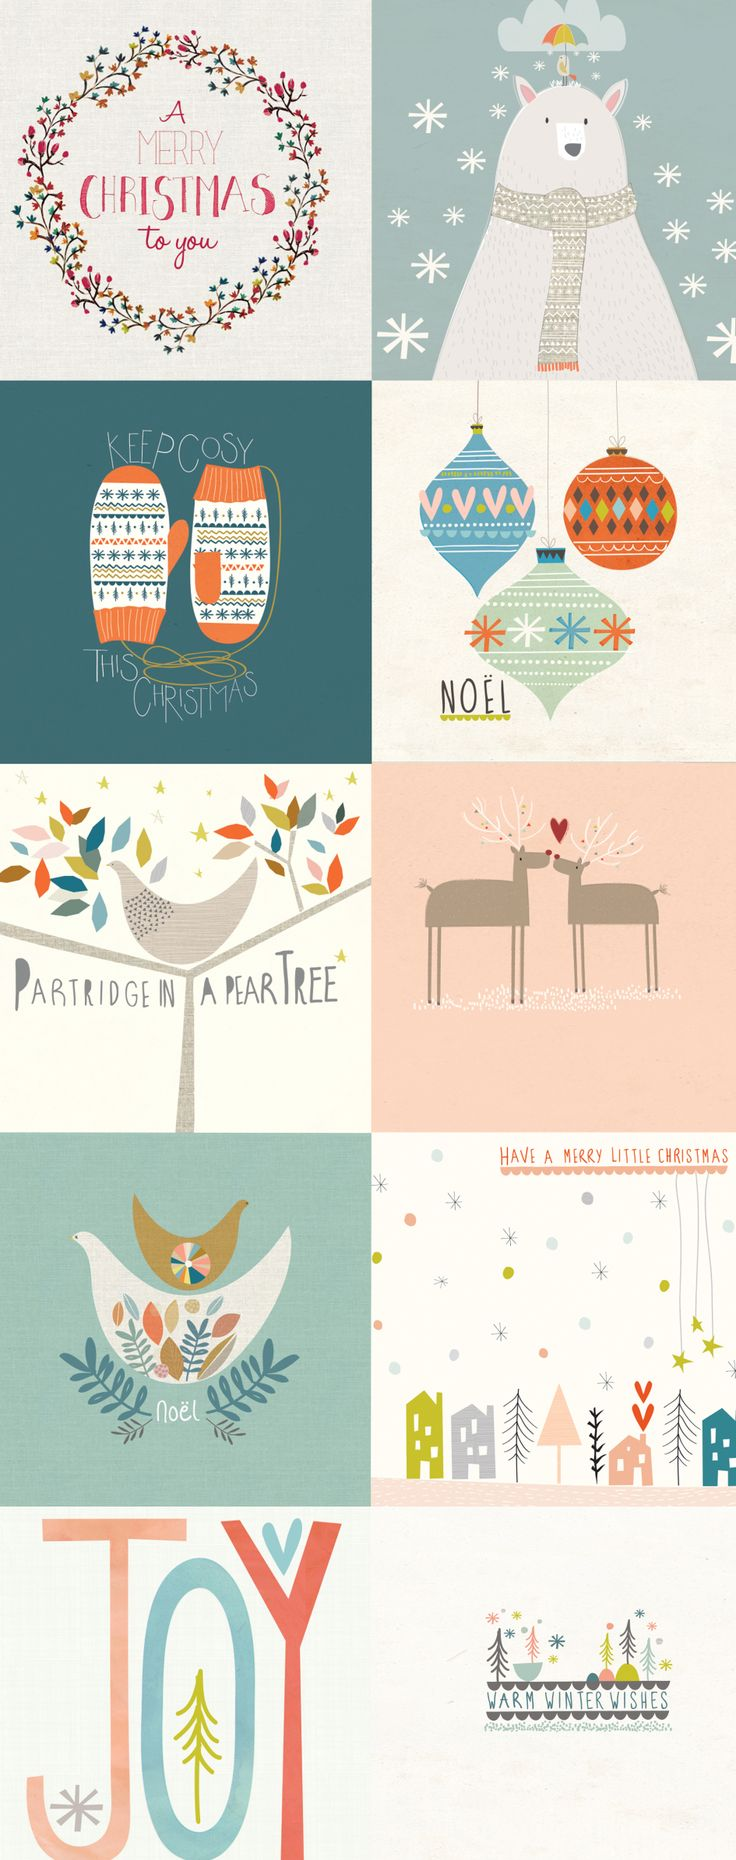 Beautiful Christmas card designs @ papermoonillustration.com